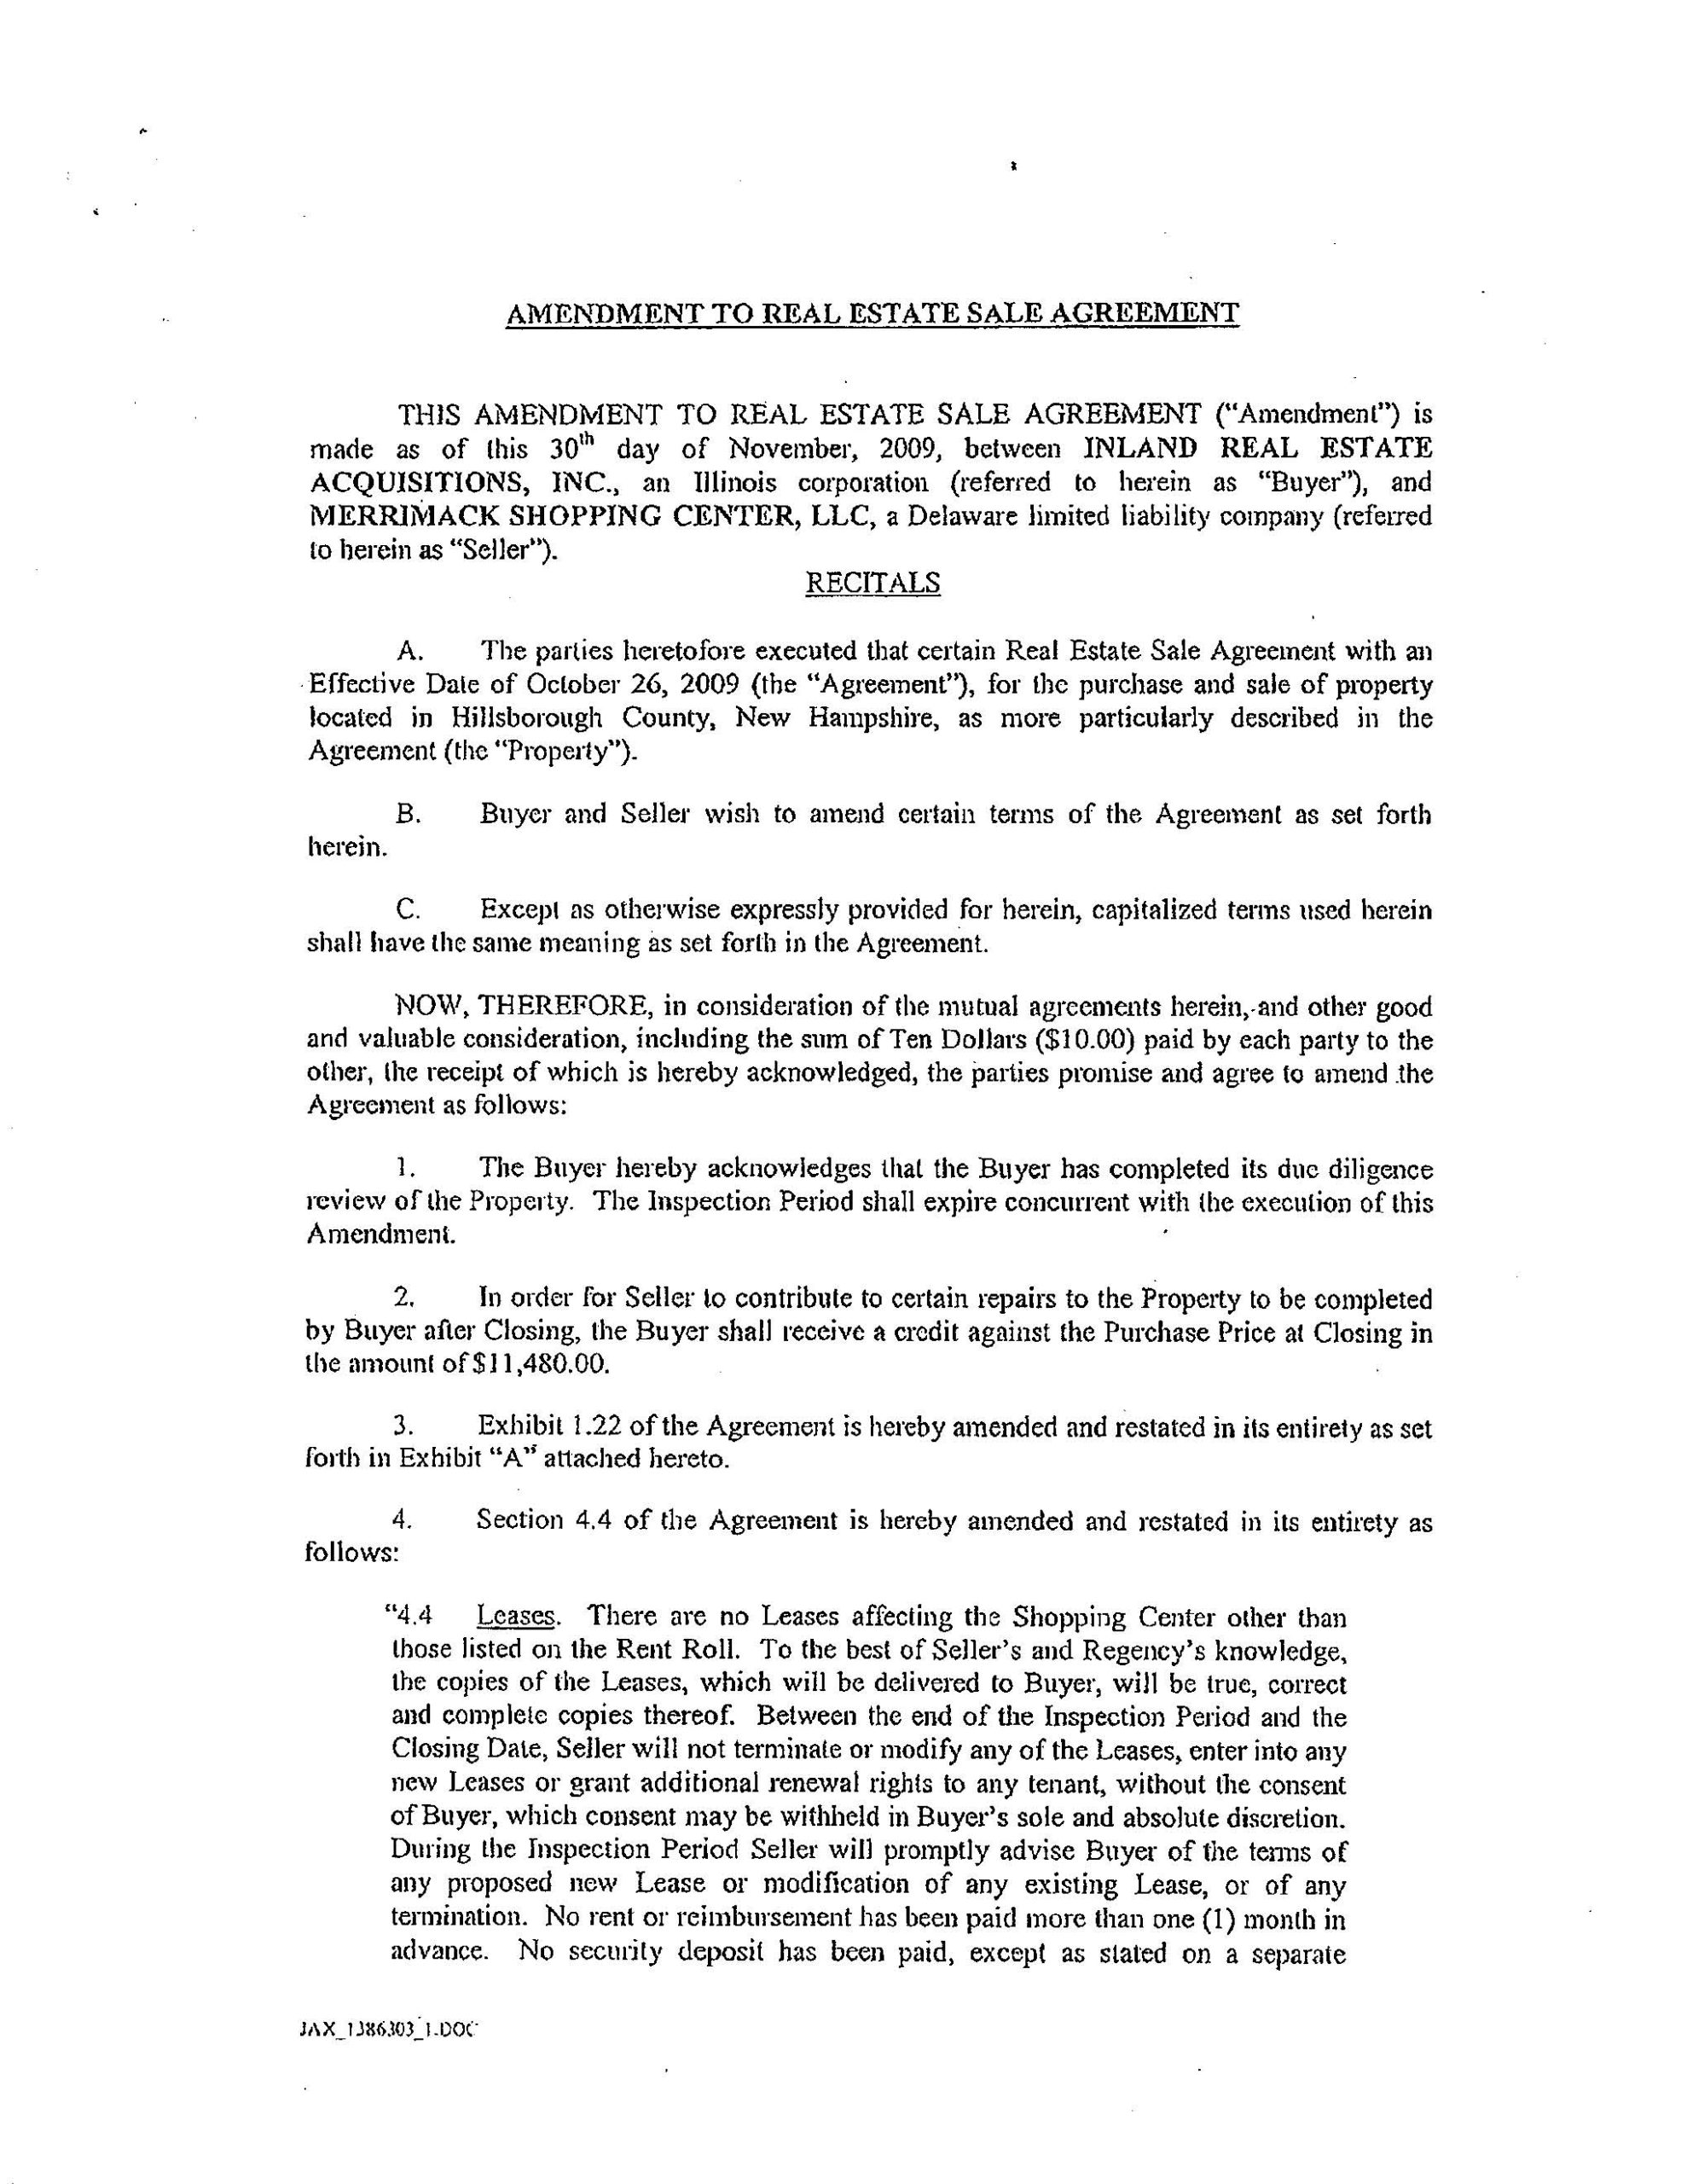 Real Estate Sale Agreement